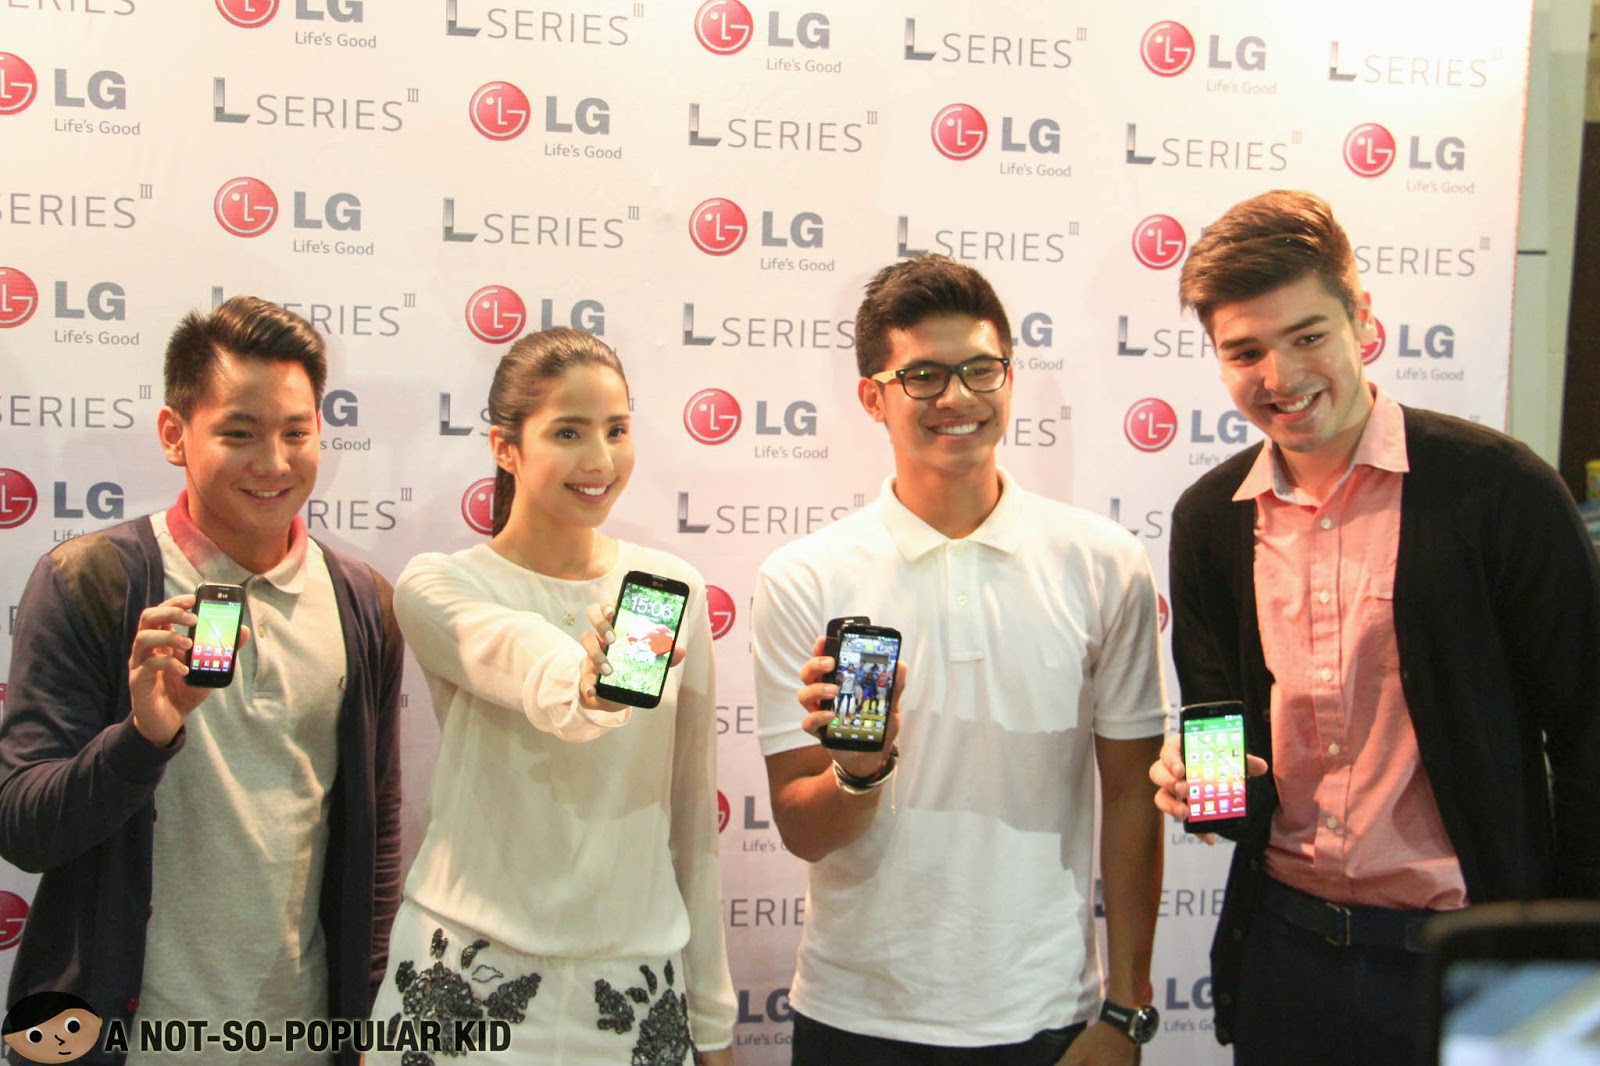 The Newest LG Brand Ambassadors - Thomas Torres, Maxene Magalona, Kiefer Ravena and Andre Paras